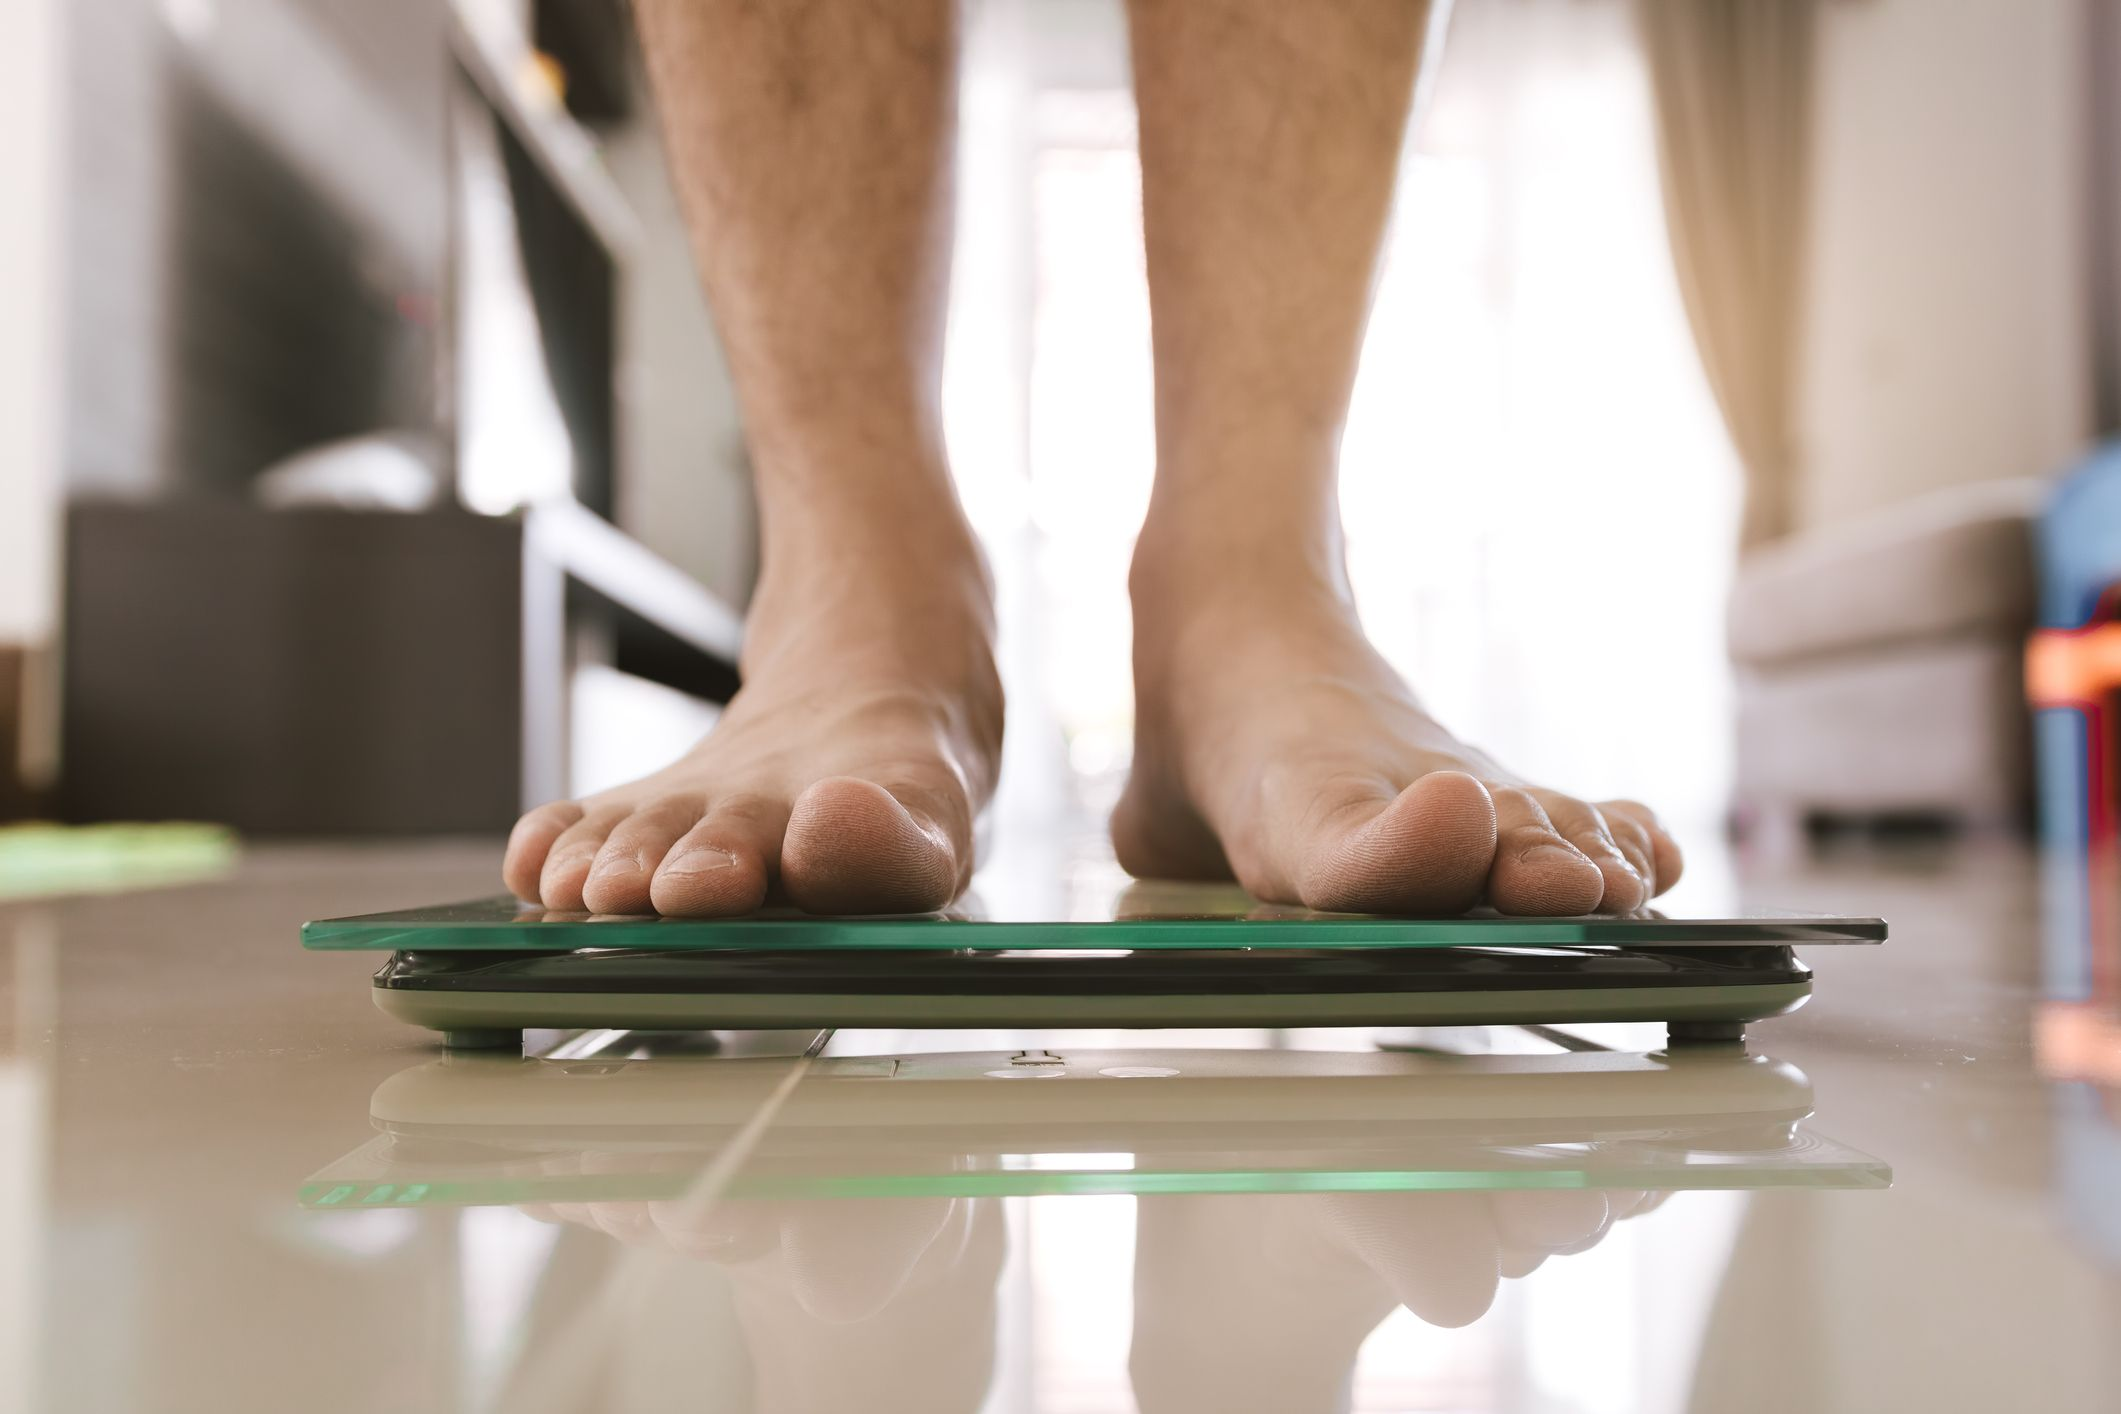 The 12 Best Bathroom Scales to Measure Weight Loss